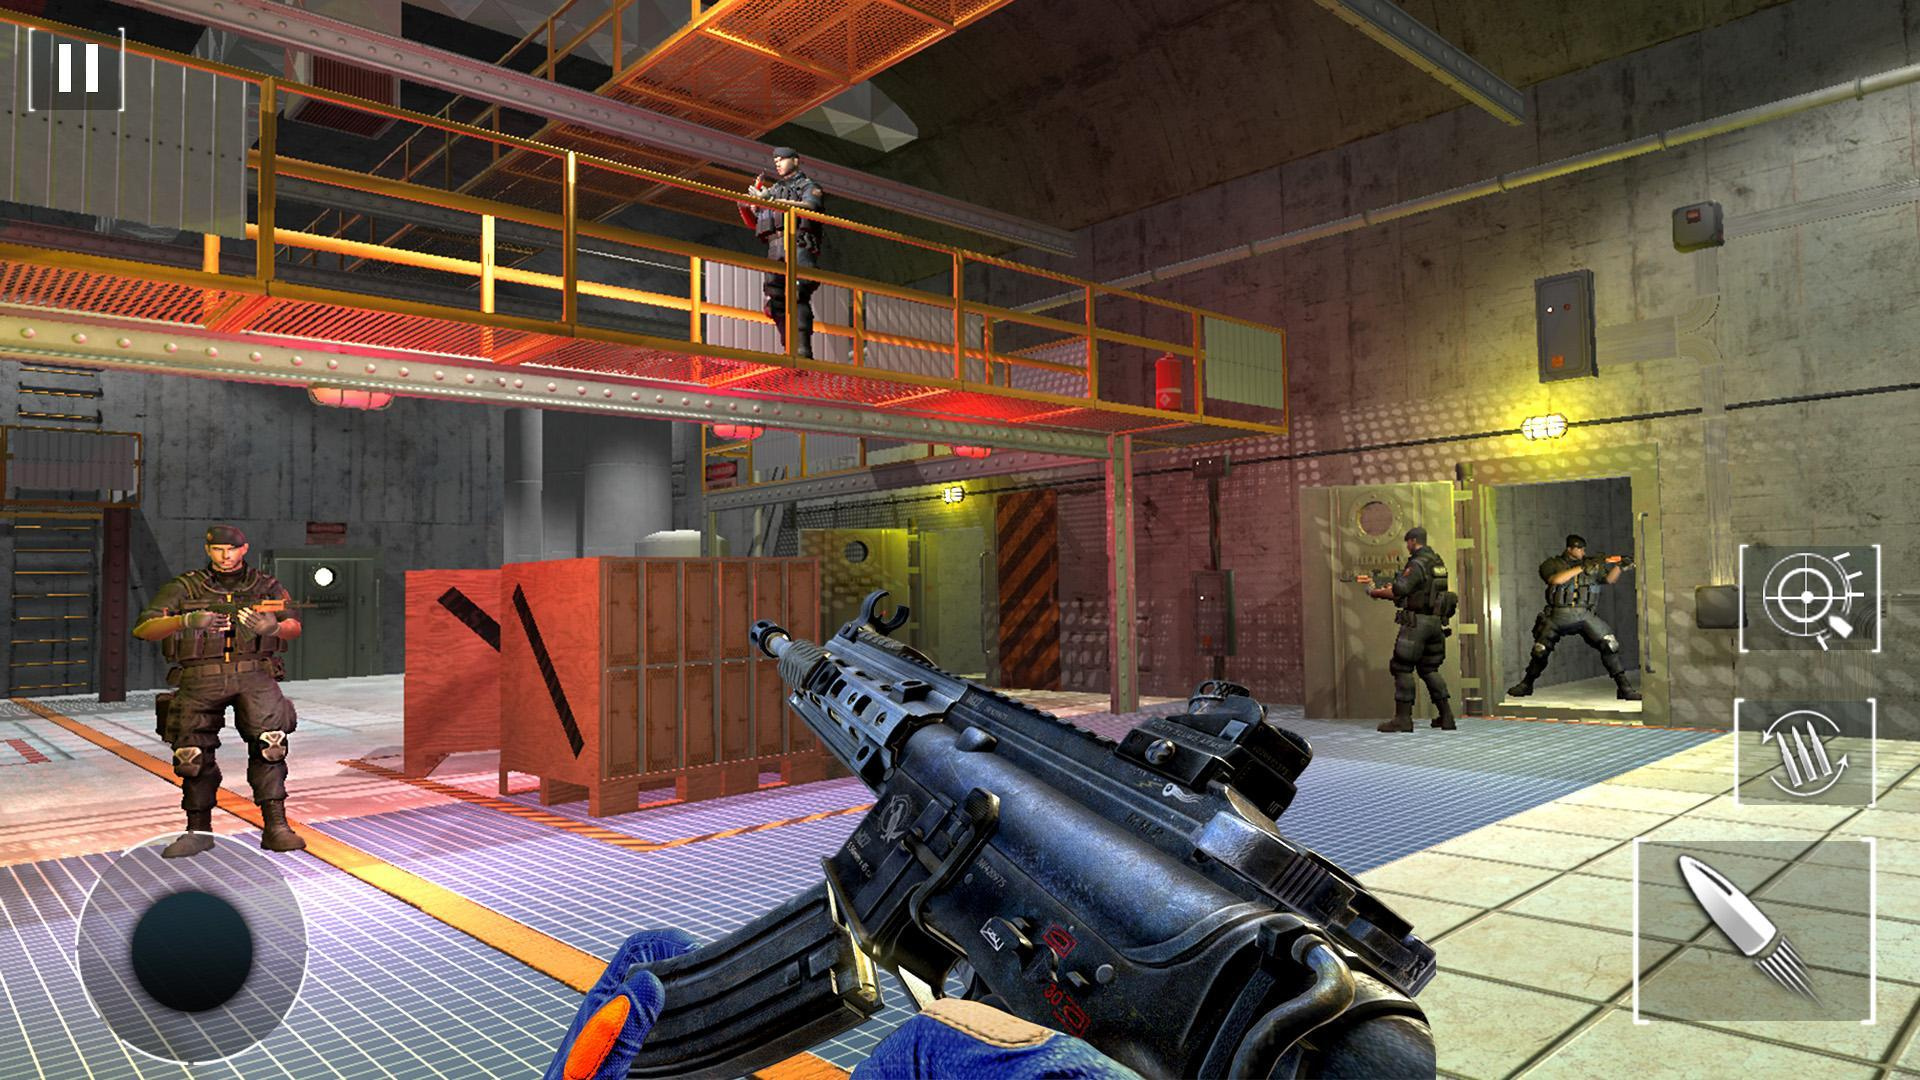 Fps Army Commando Mission: Free Action Games for Android - APK Download